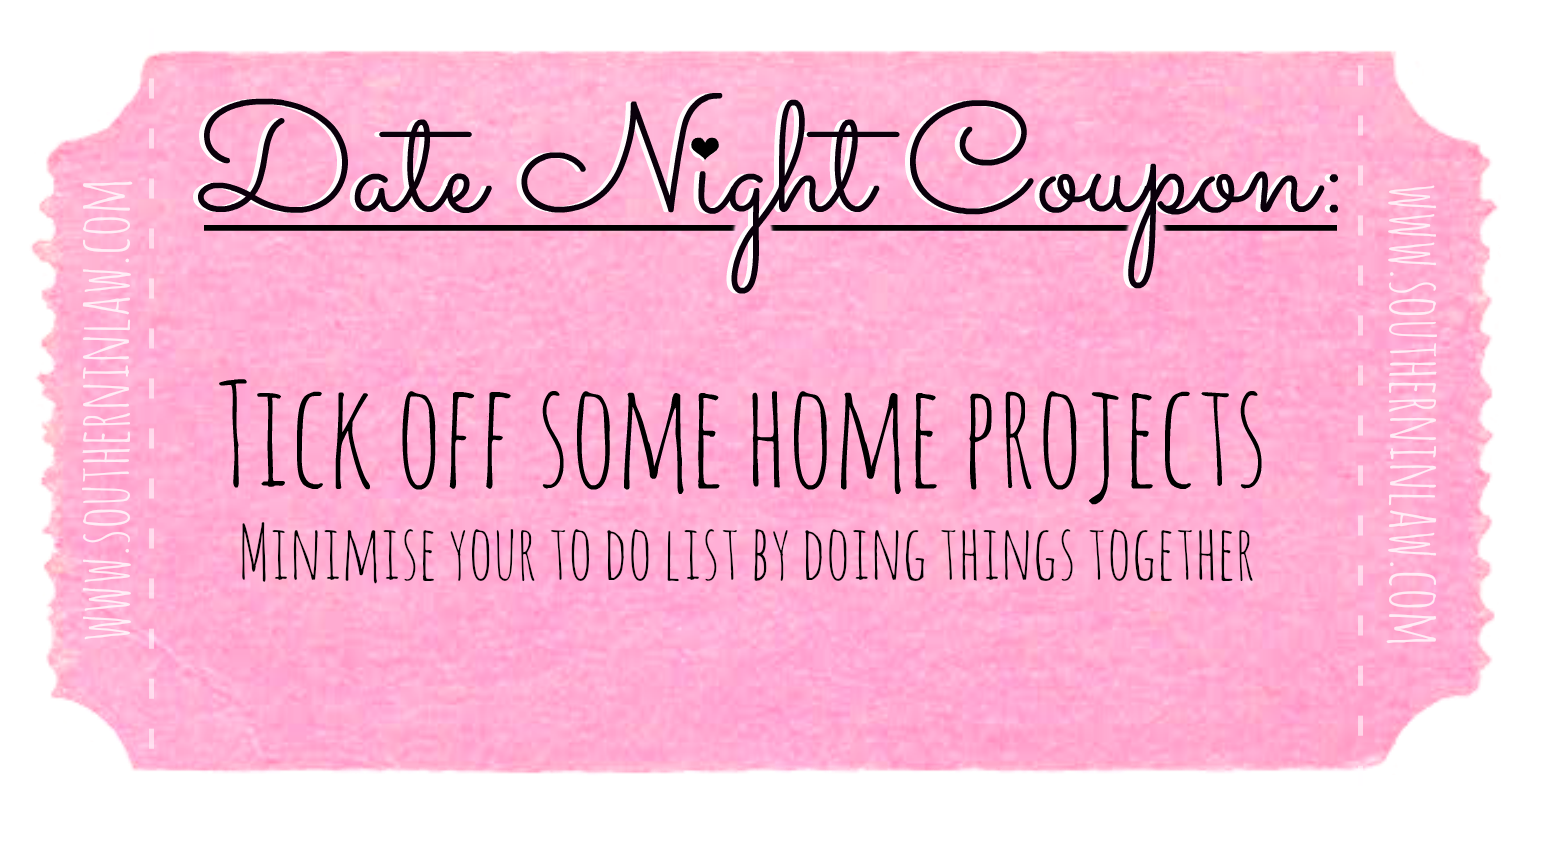 Affordable Date Ideas - Cheap Date Ideas Coupons - Tick off some home projects